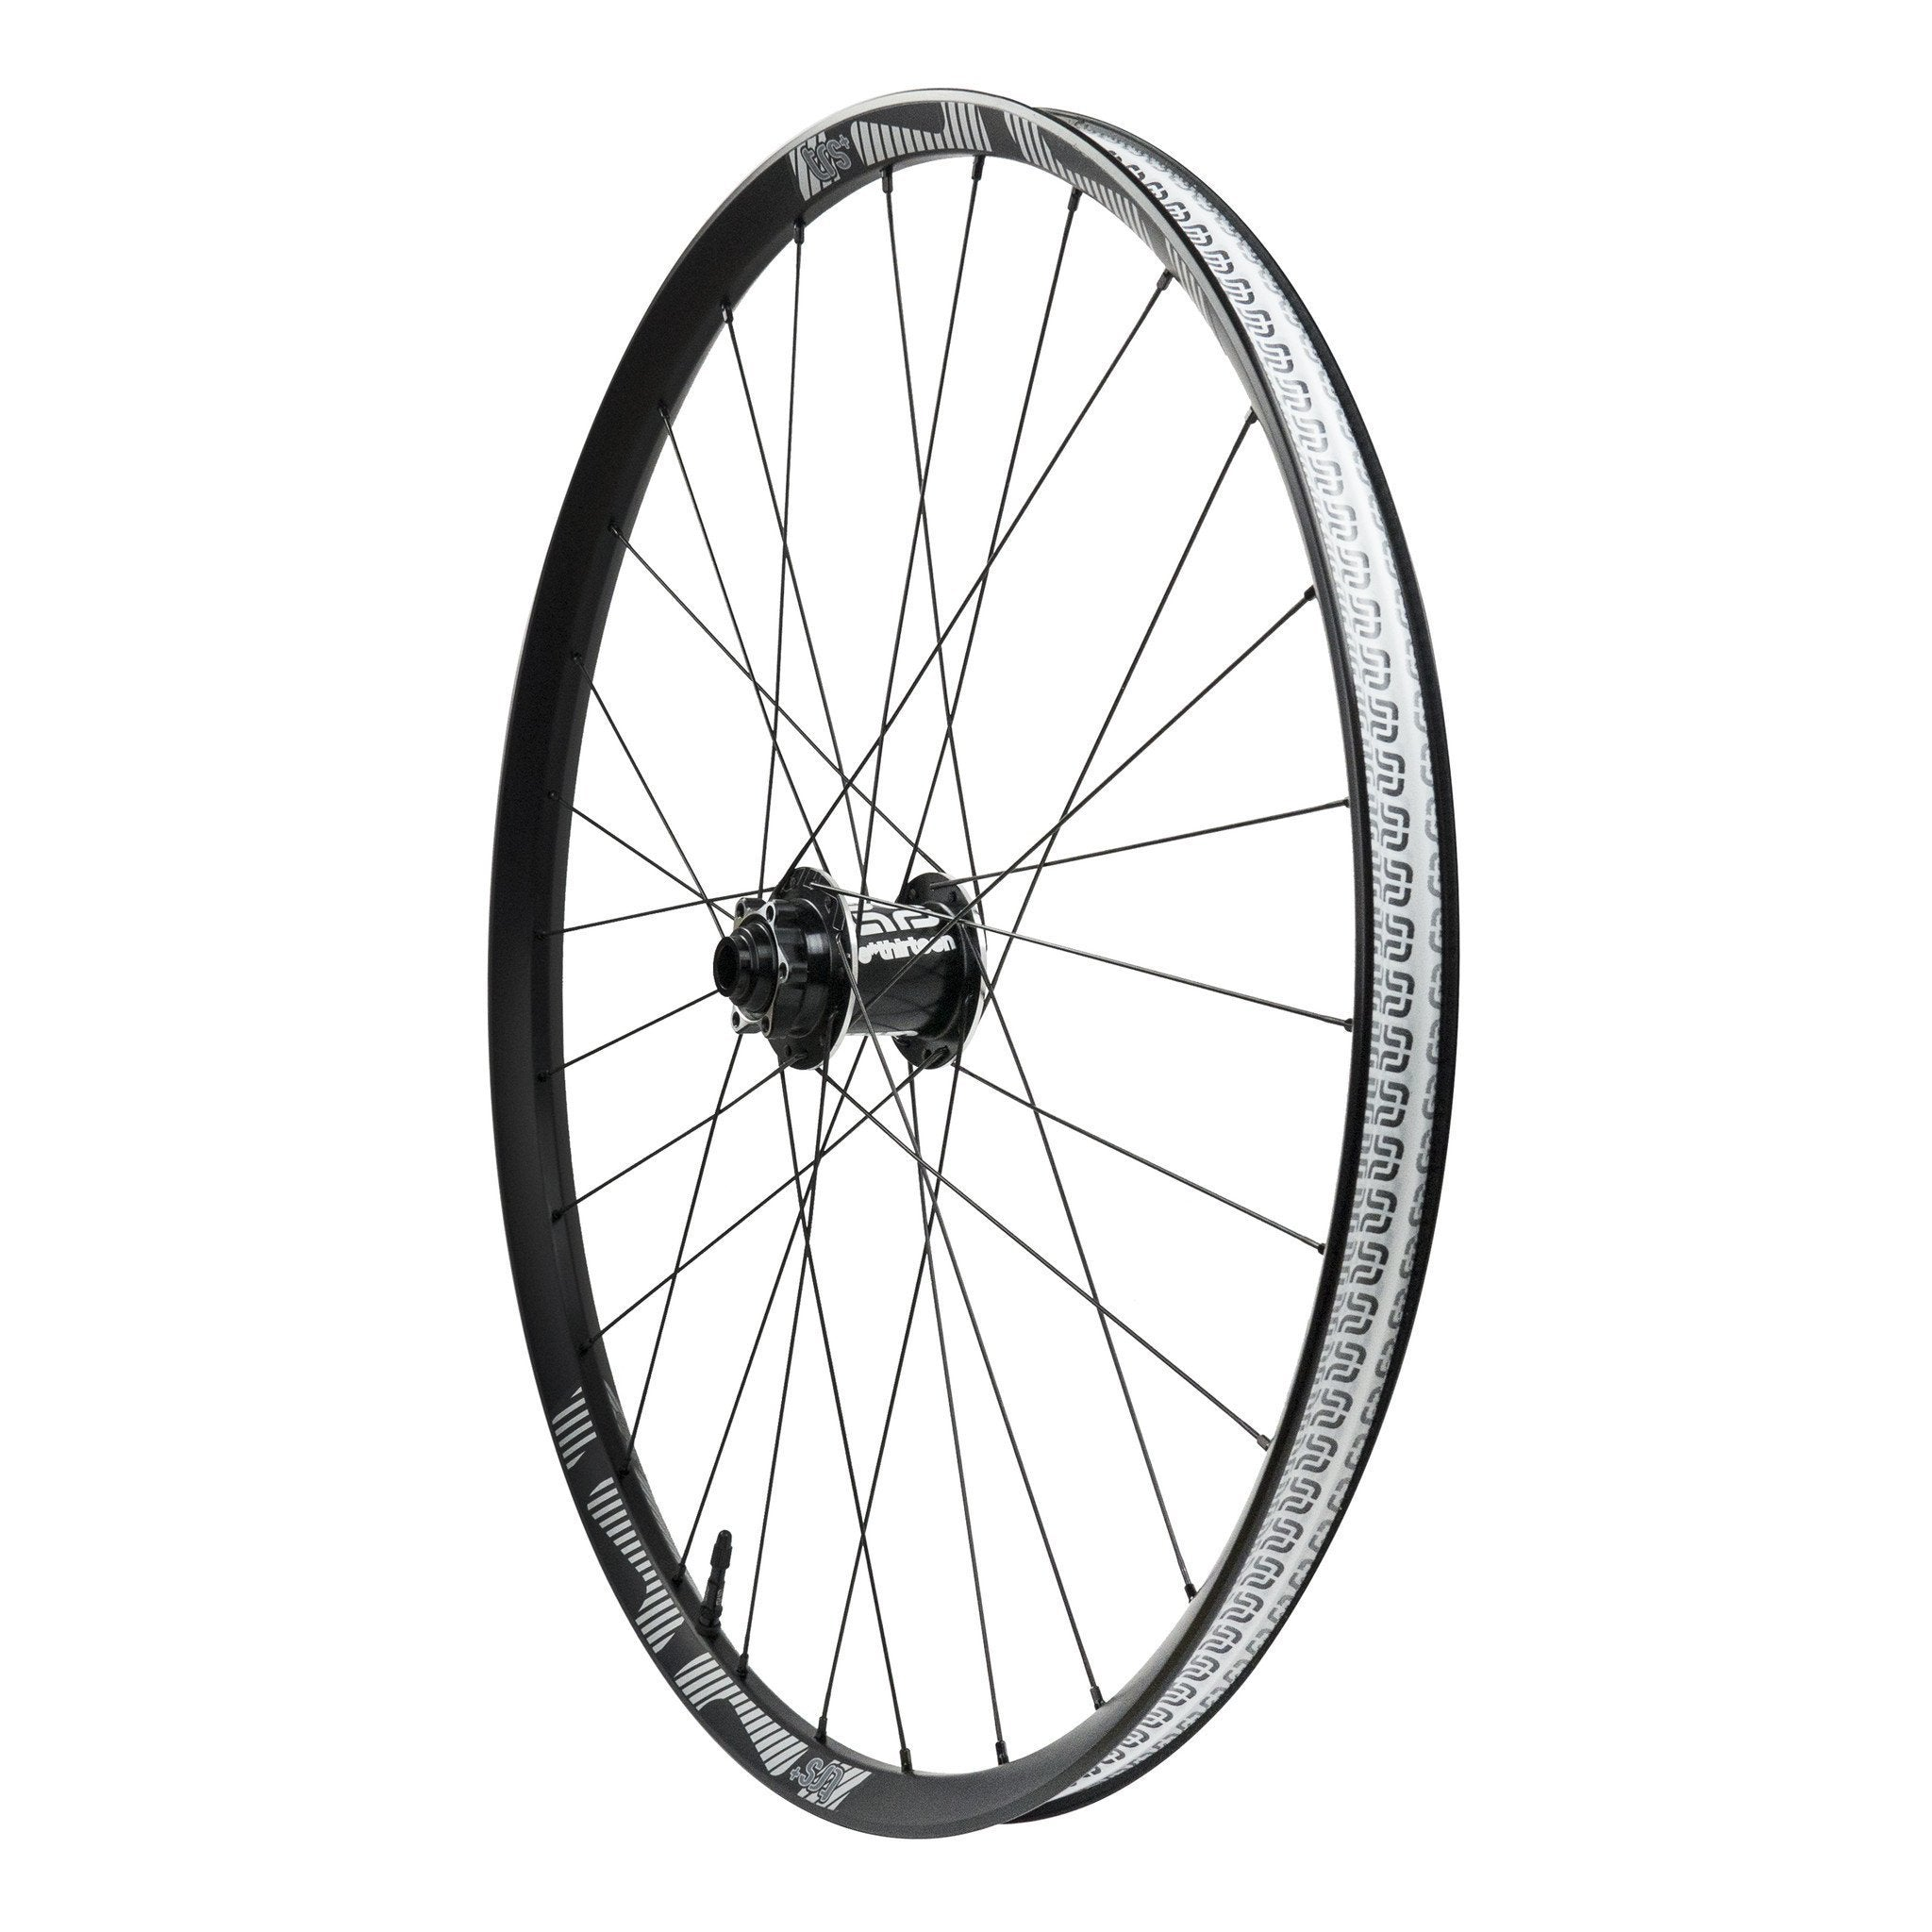 TRS Plus Front Wheel - Discontinued